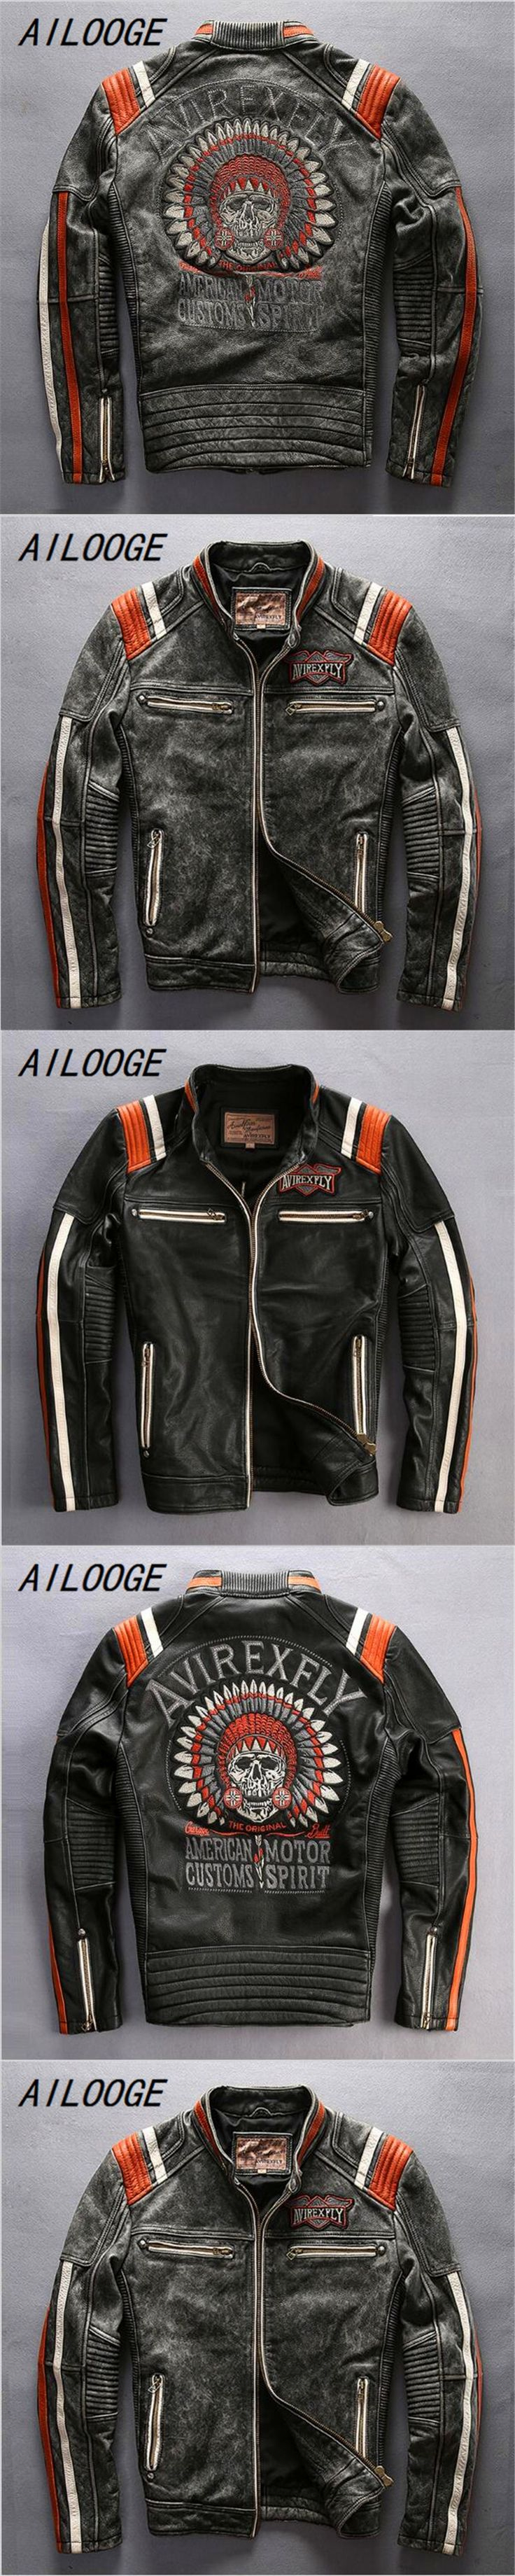 AILOOGE 2017 Mans Genuine Cow Leather Motorcycle Rider Jacket Vintage Stand Collar Embroidery Leather Motorcycle Rider Jacket